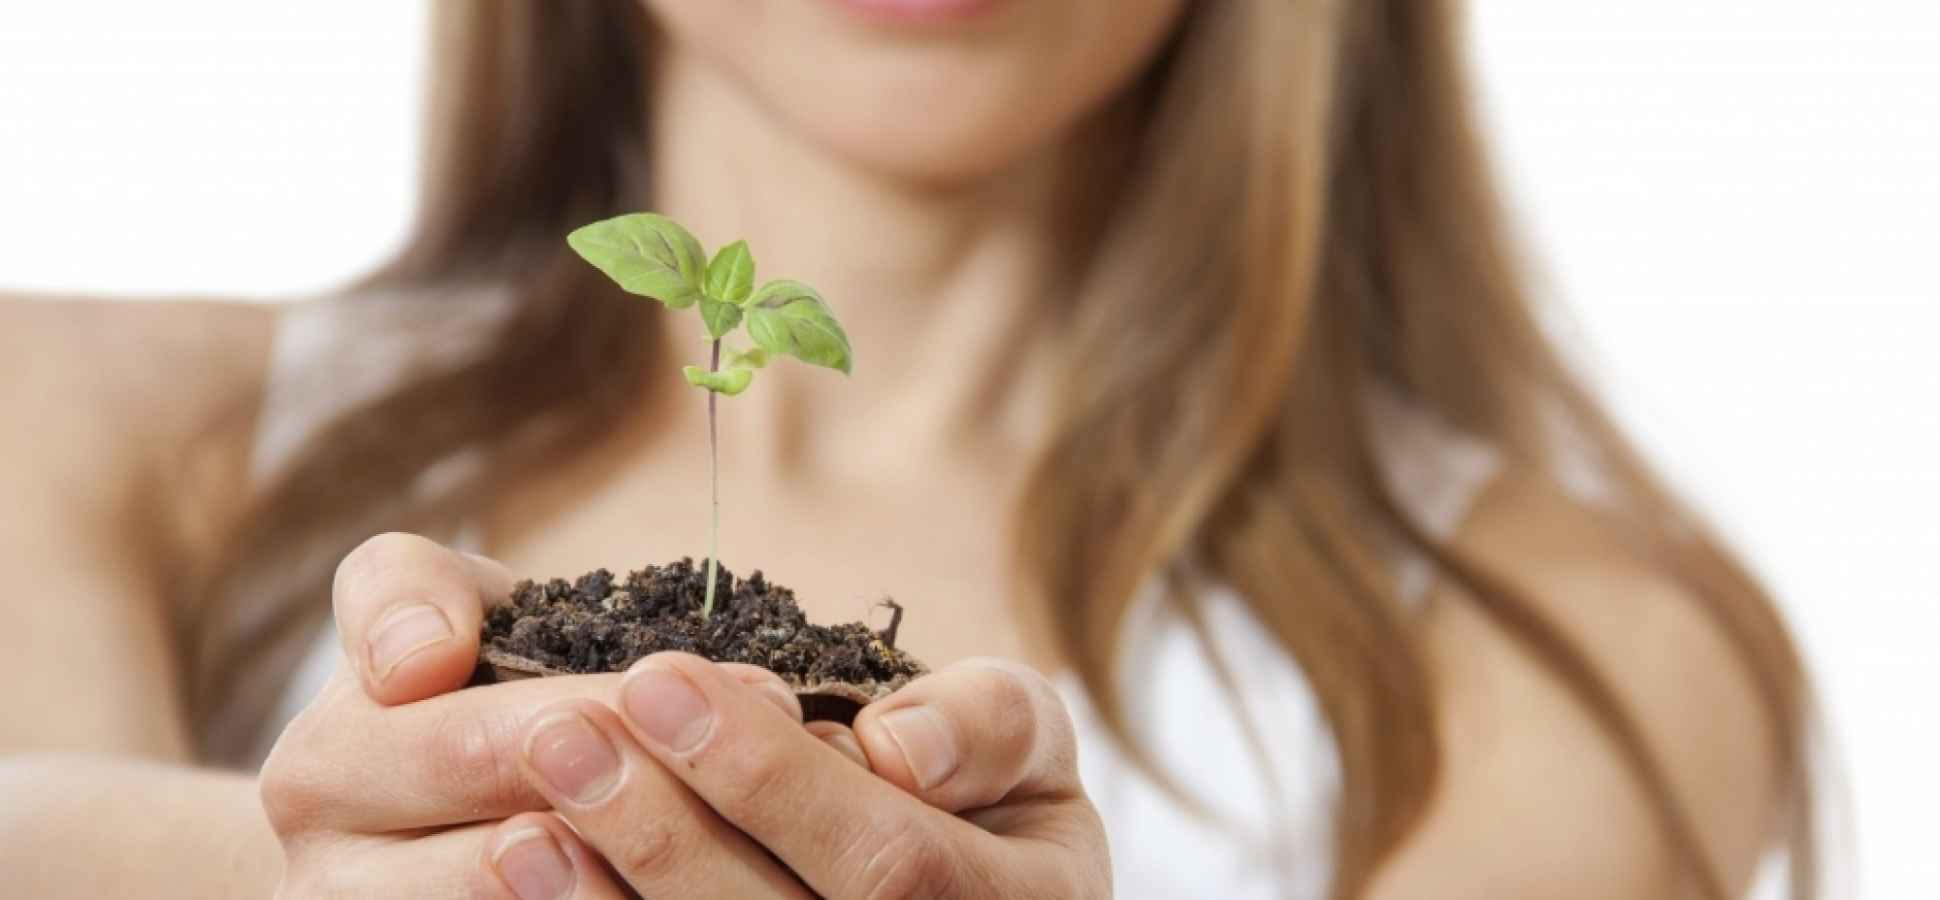 Why the Key to Innovation Is Personal Growth